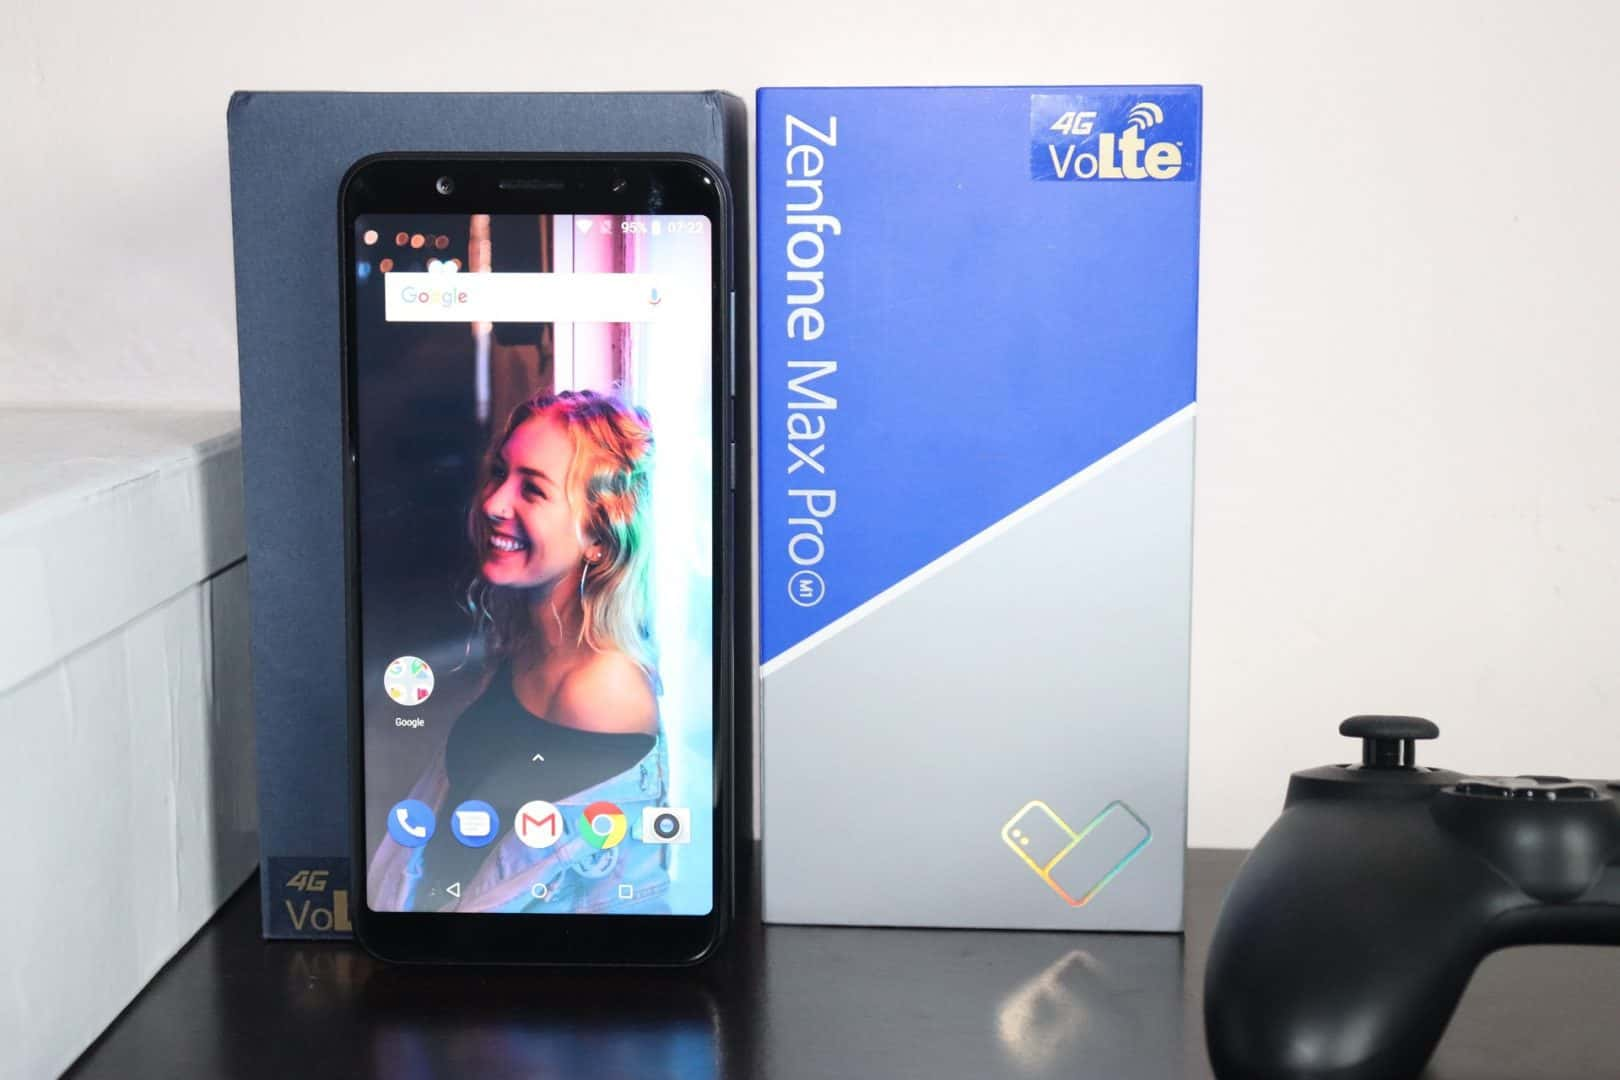 Zenfone Max Pro M1 6GB Hands-on & First Impressions - The Wait is Over! 😎 - 1